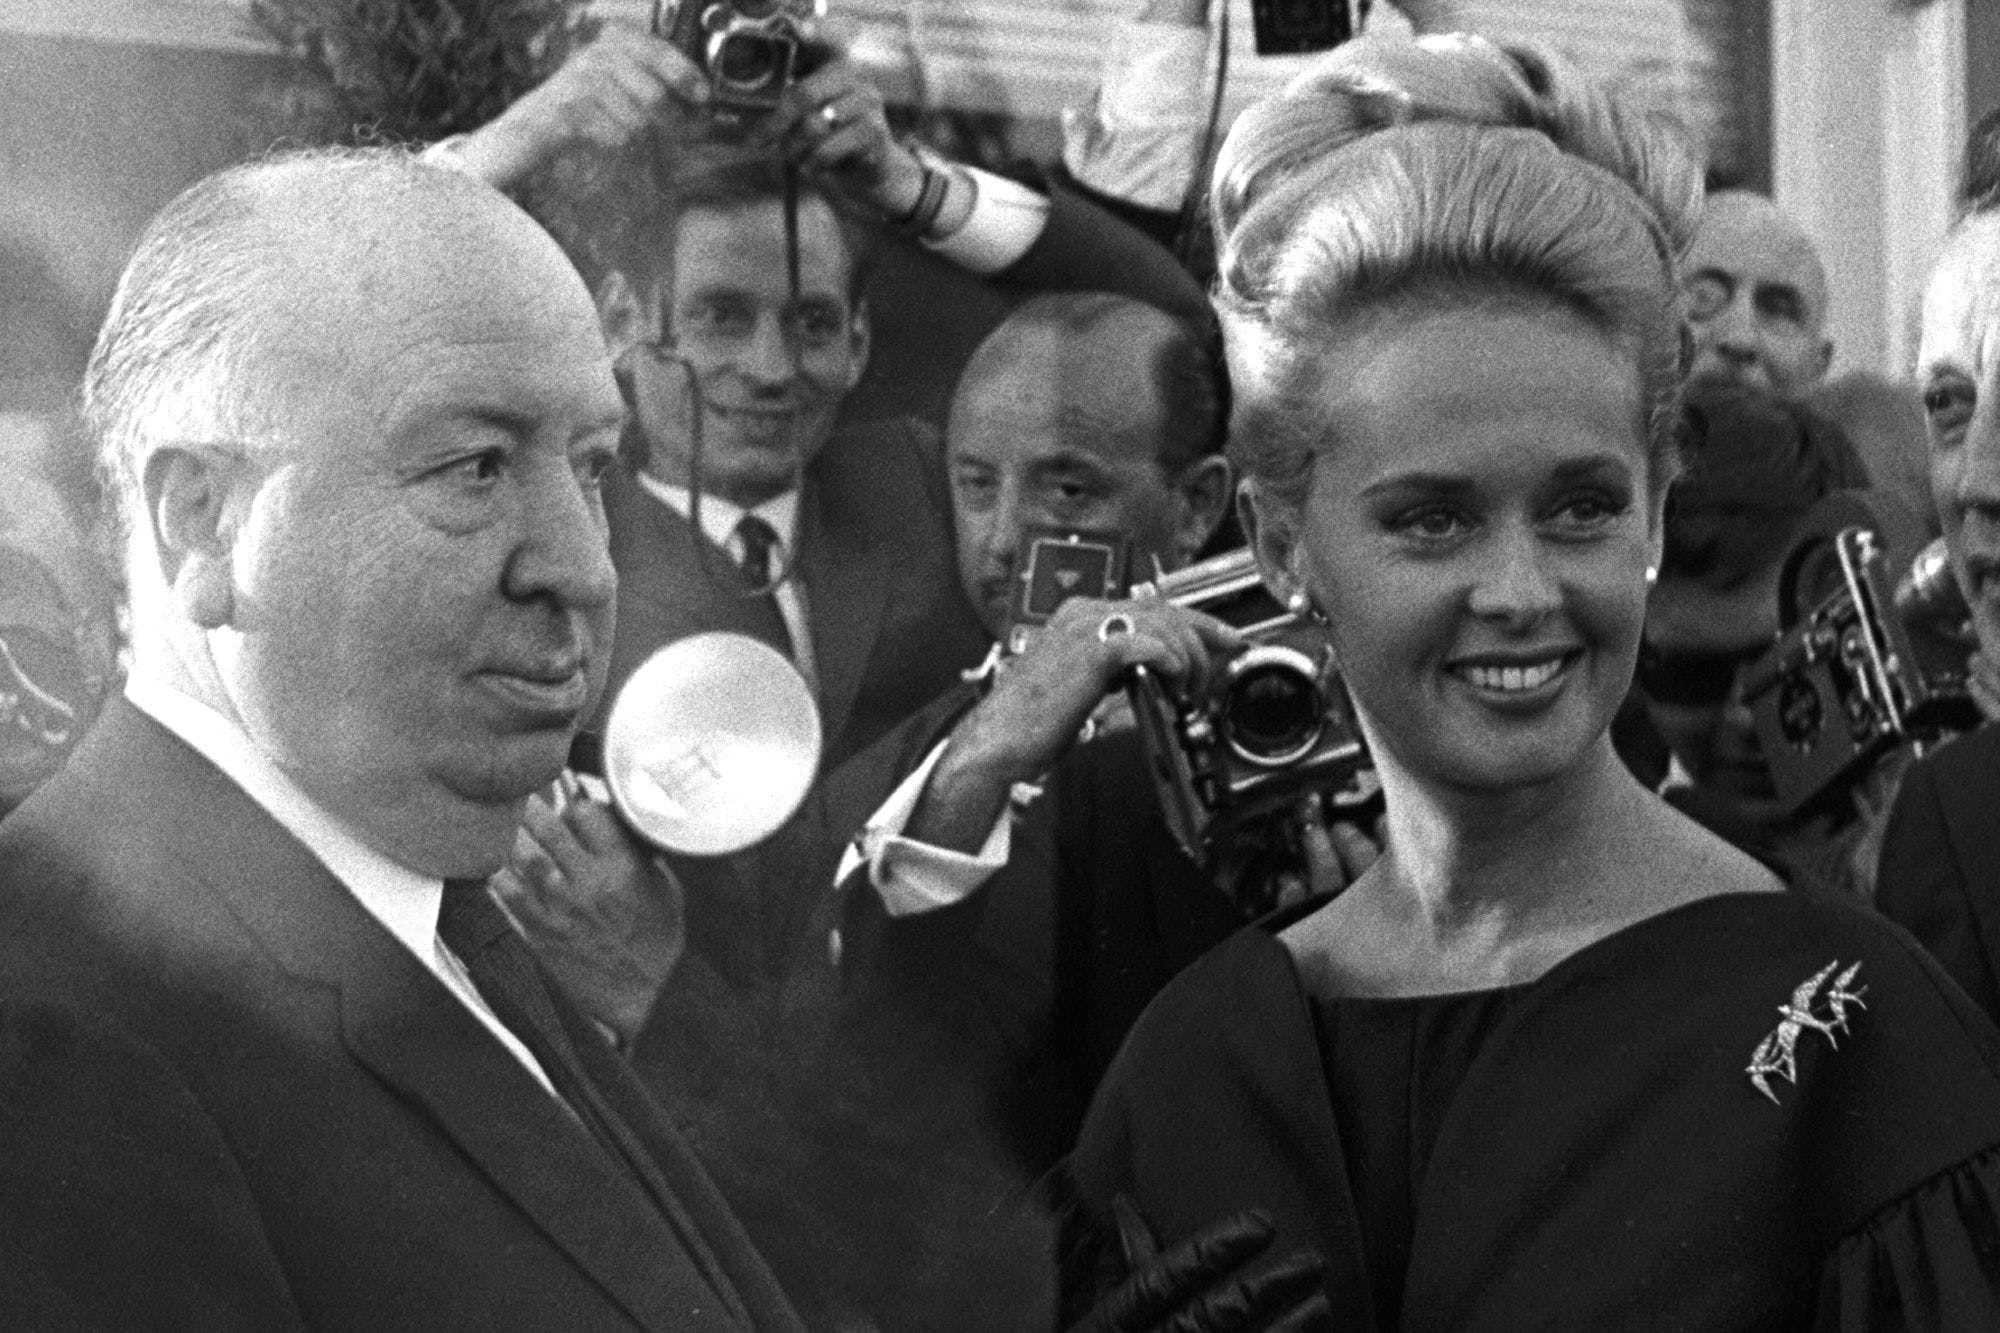 Obsession: The Dark Side of Alfred Hitchcock